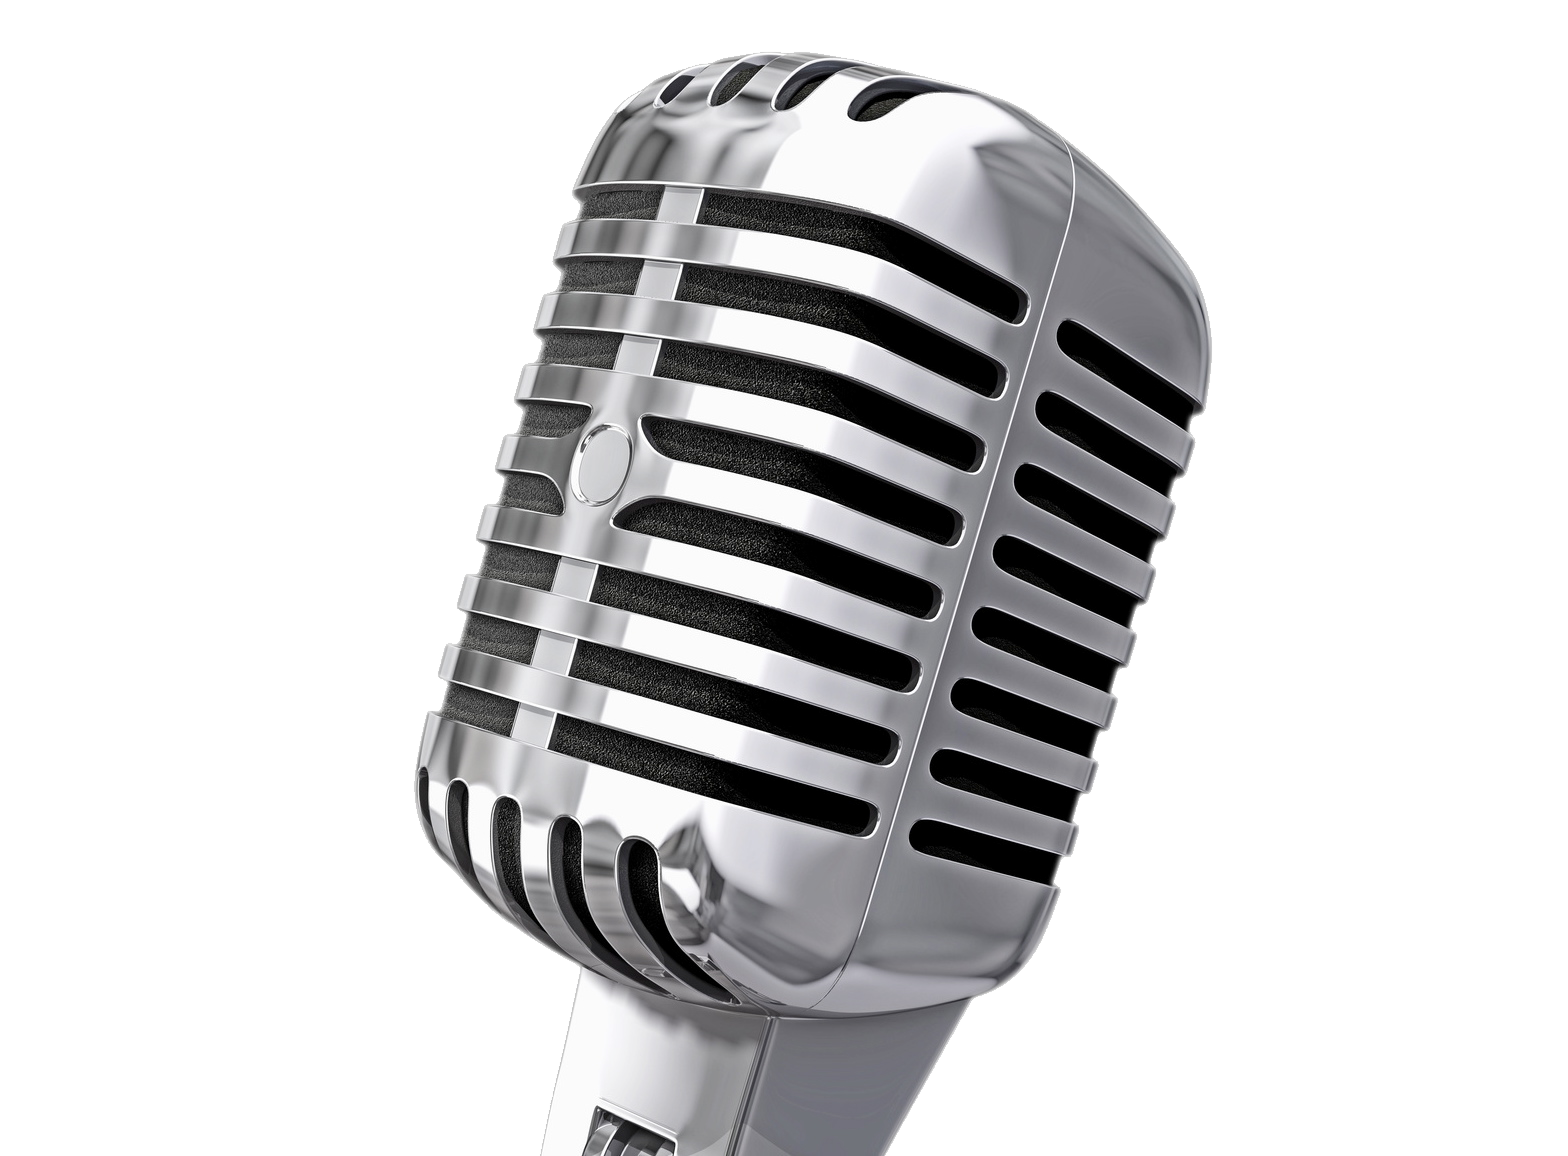 Png mic. Microphone image free download